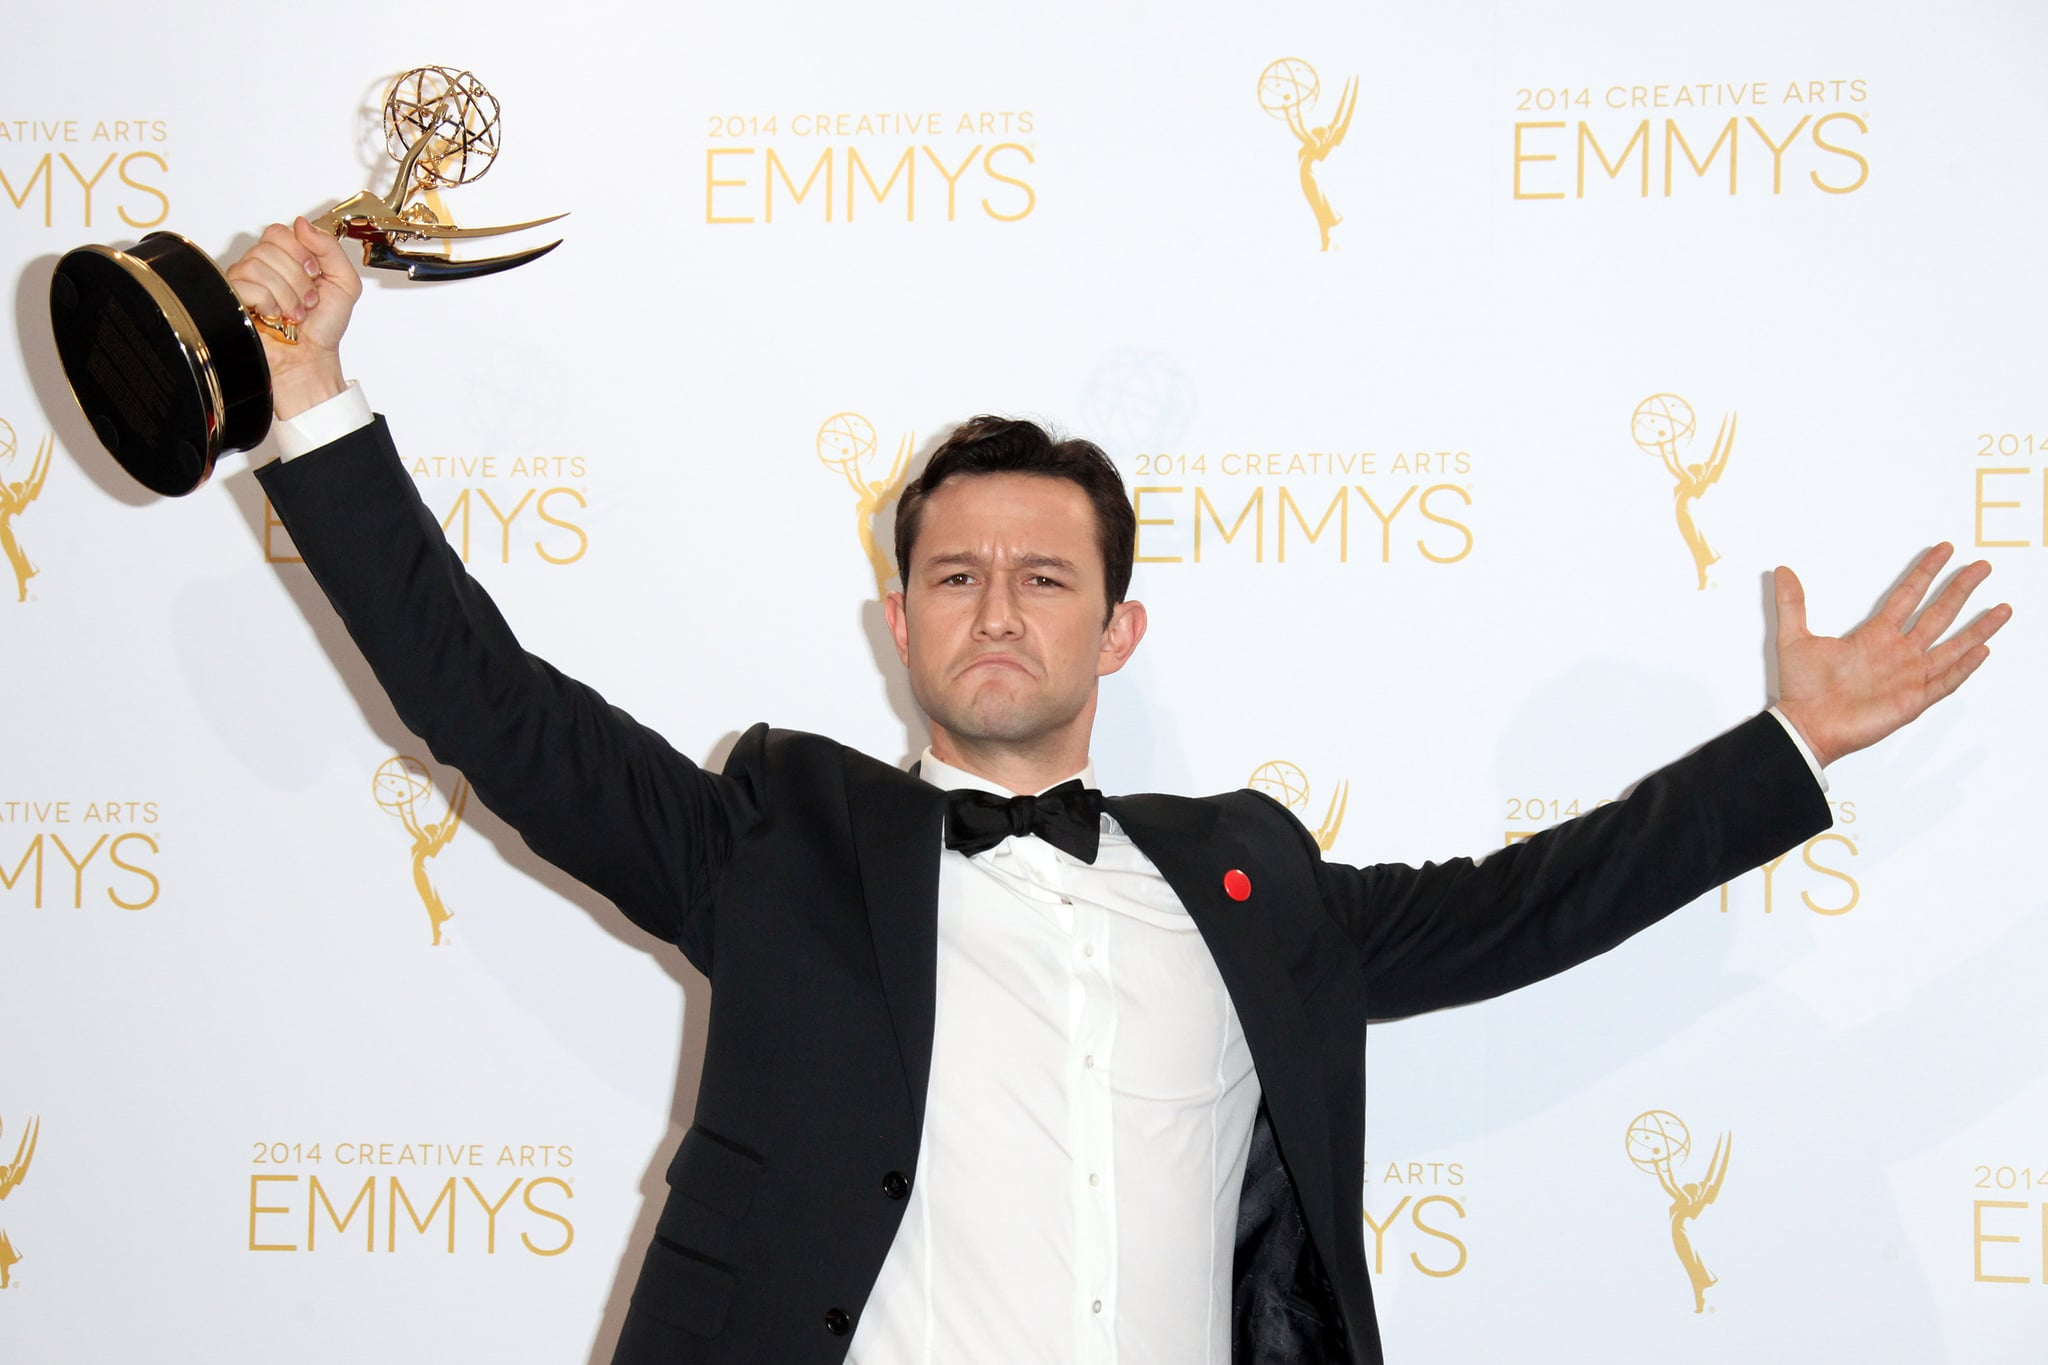 Stunning Stars Amp Up the Excitement For the Emmys